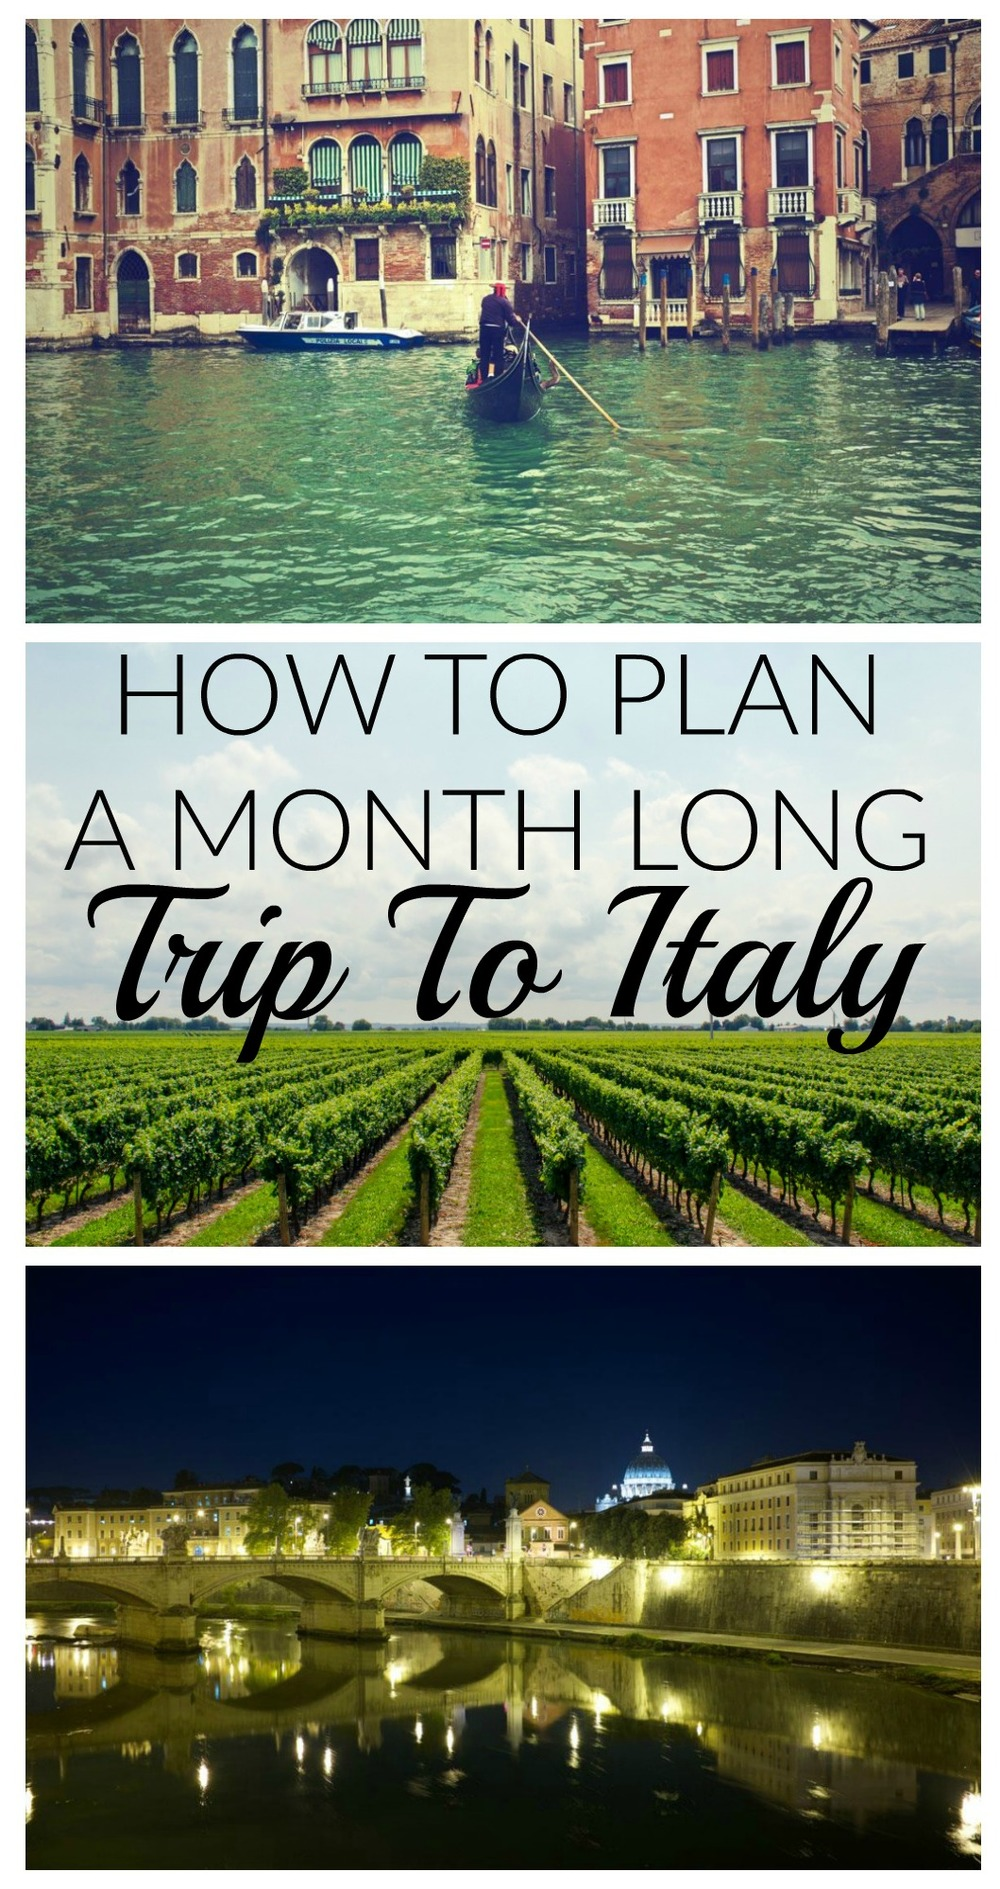 touring italy pinterest pic layout 2.jpg